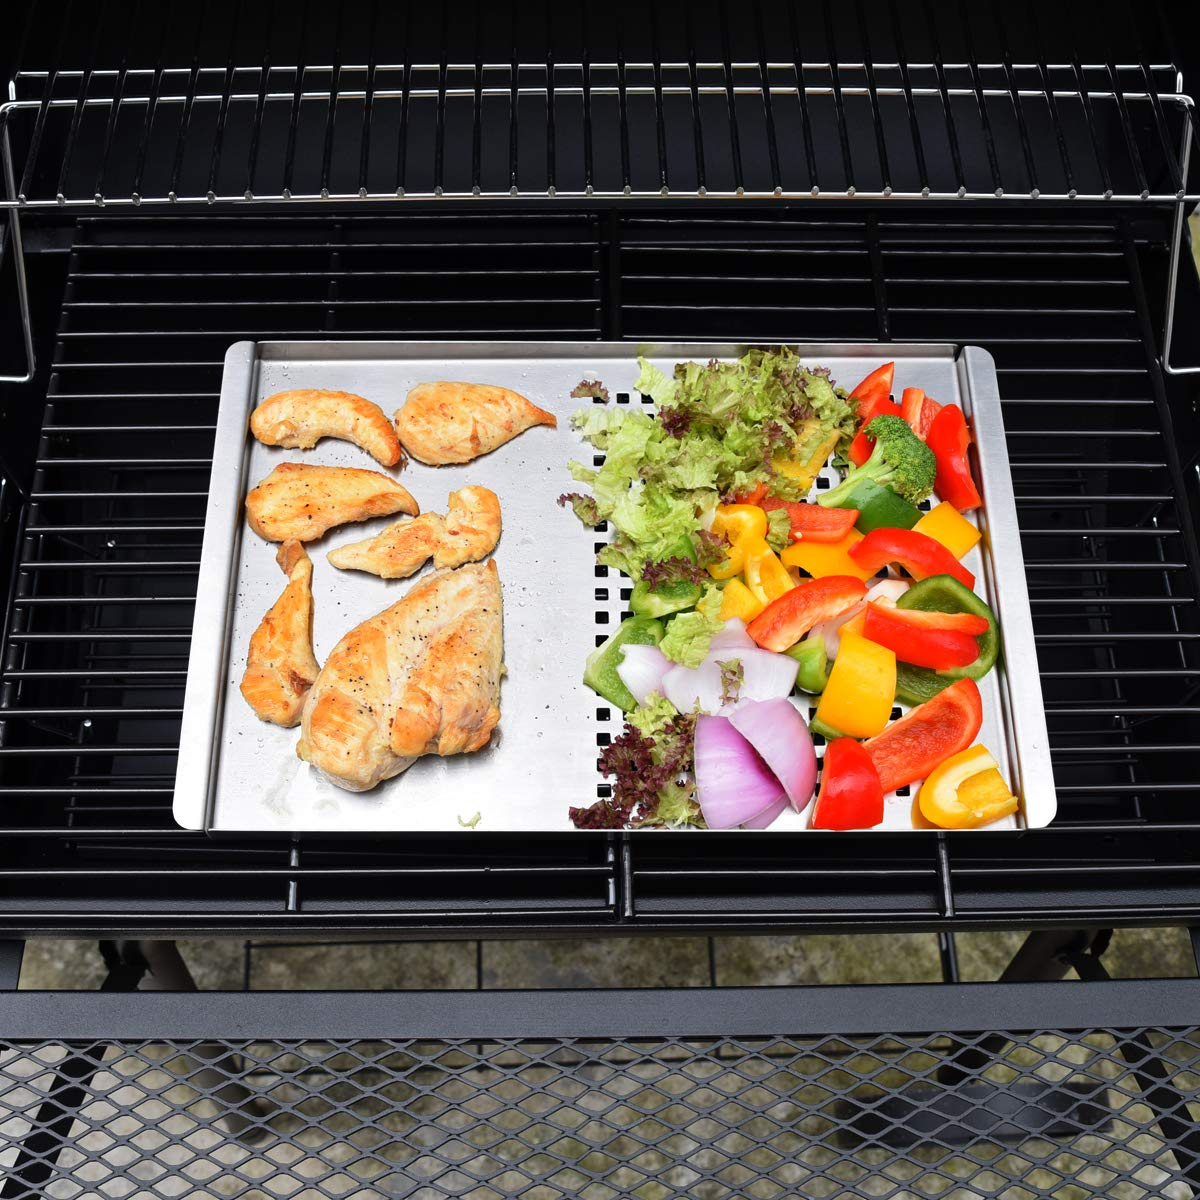 Stainless Steel Grill Pan, CMYK Non Stick Frying BBQ Grill Plate, Barbecue Grills Outdoor Cooking Accessories Rectangular, Grilling Gifts For Men